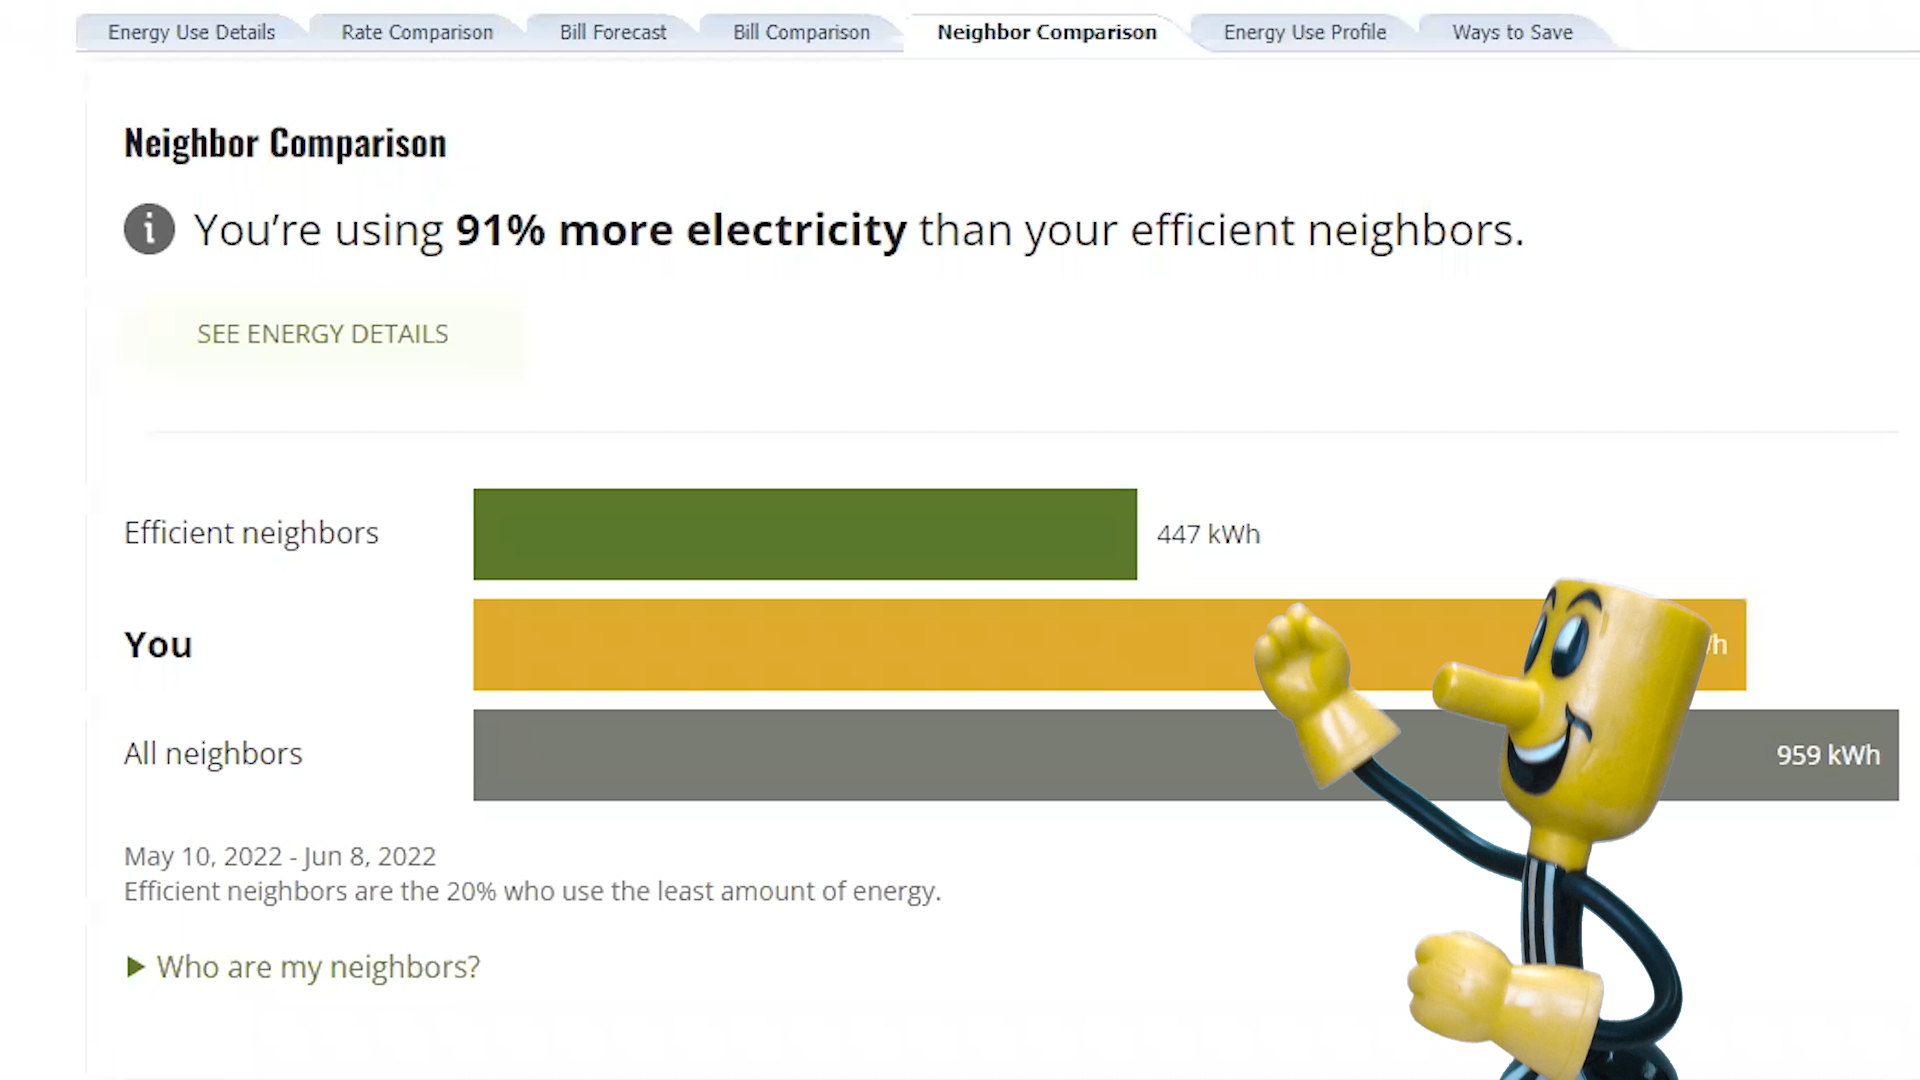 SMECO's Account Manager